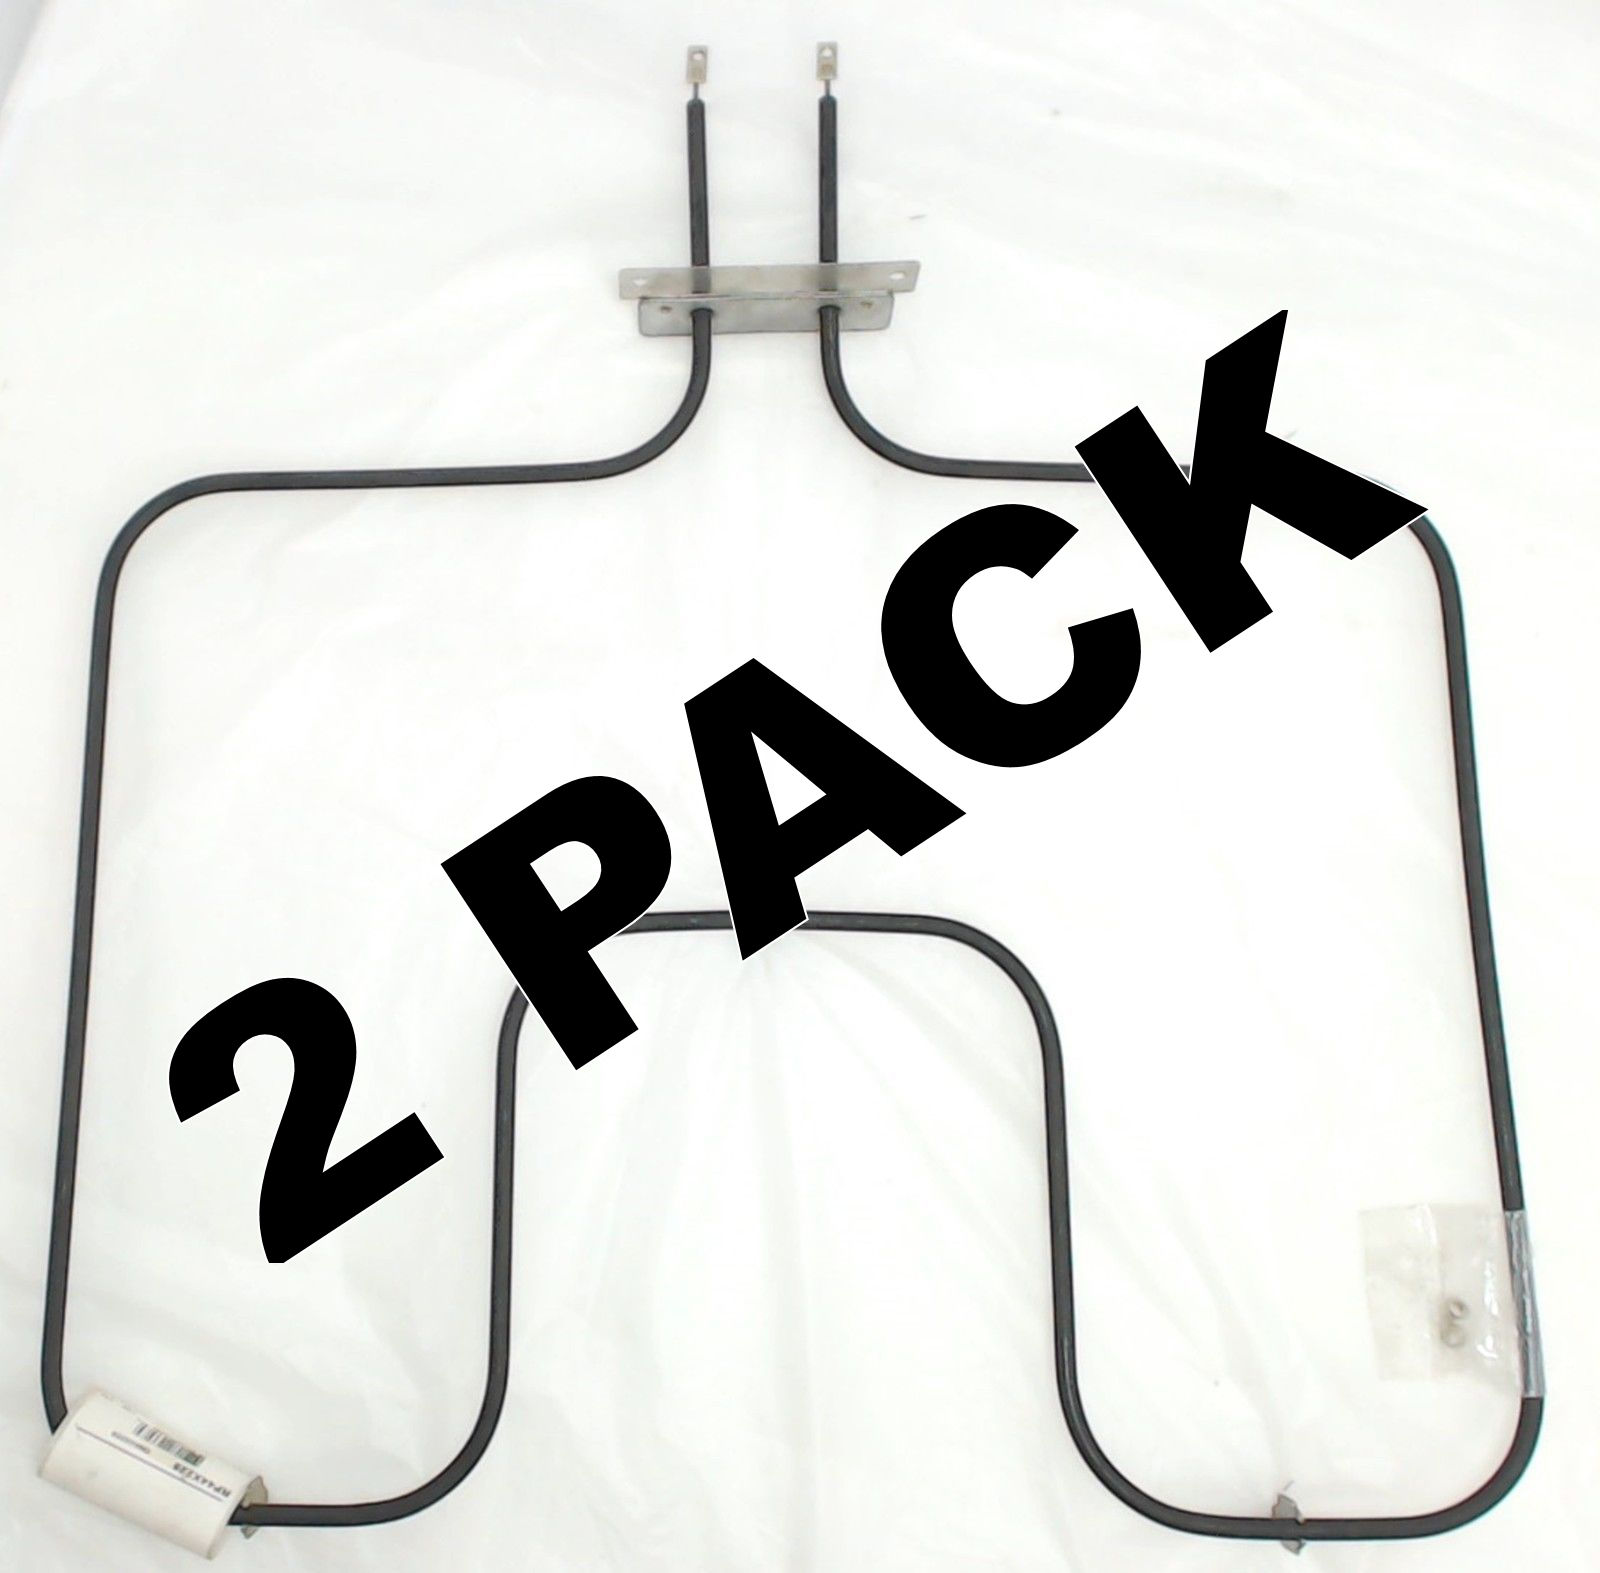 2 Pk, Bake Element for General Electric, AP2031045, PS249429, WB44X228